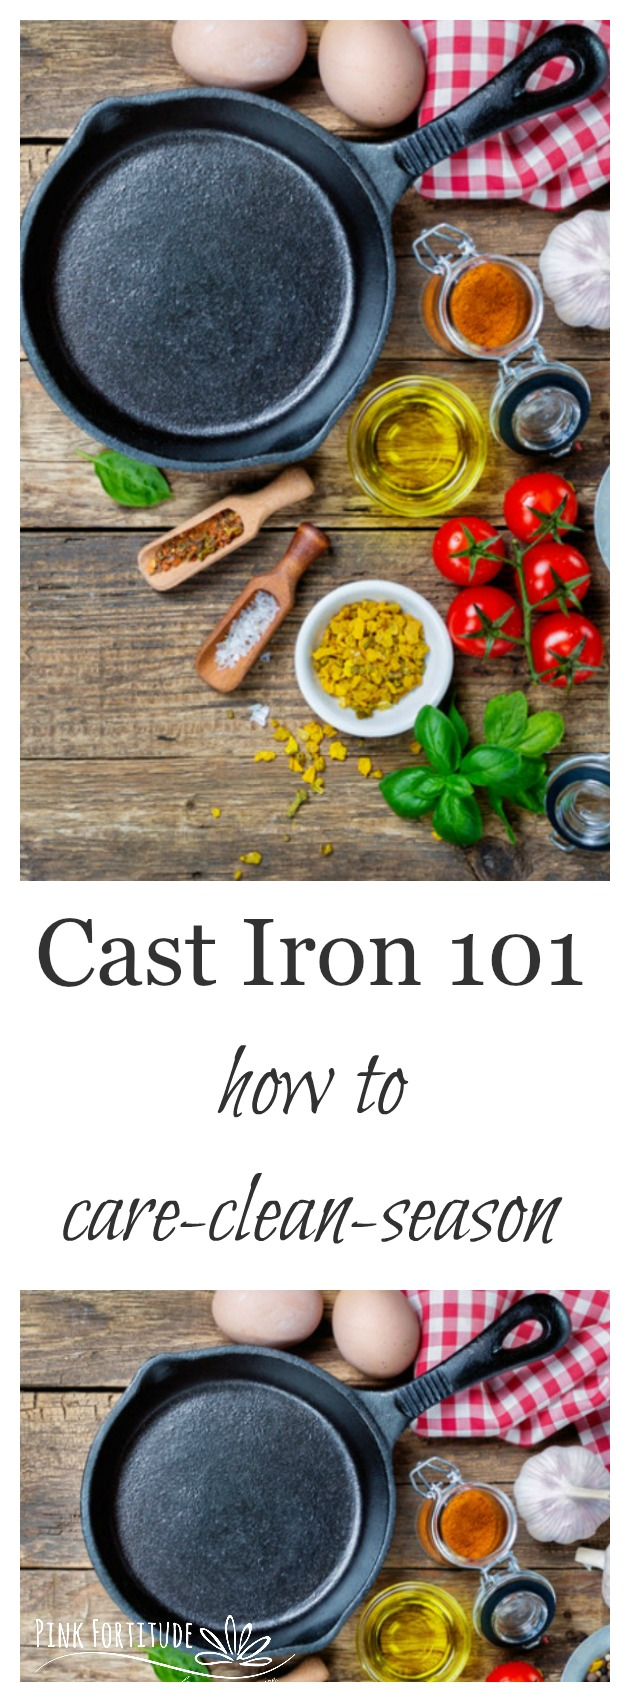 Cast iron is my favorite to cook with. But it can be scary when it comes to care and cleaning. It doesn't have to be a pain in the patootie to care for. Here are some great tips and step-by-step instructions to make caring for, cleaning, and seasoning your cast iron simple and easy.